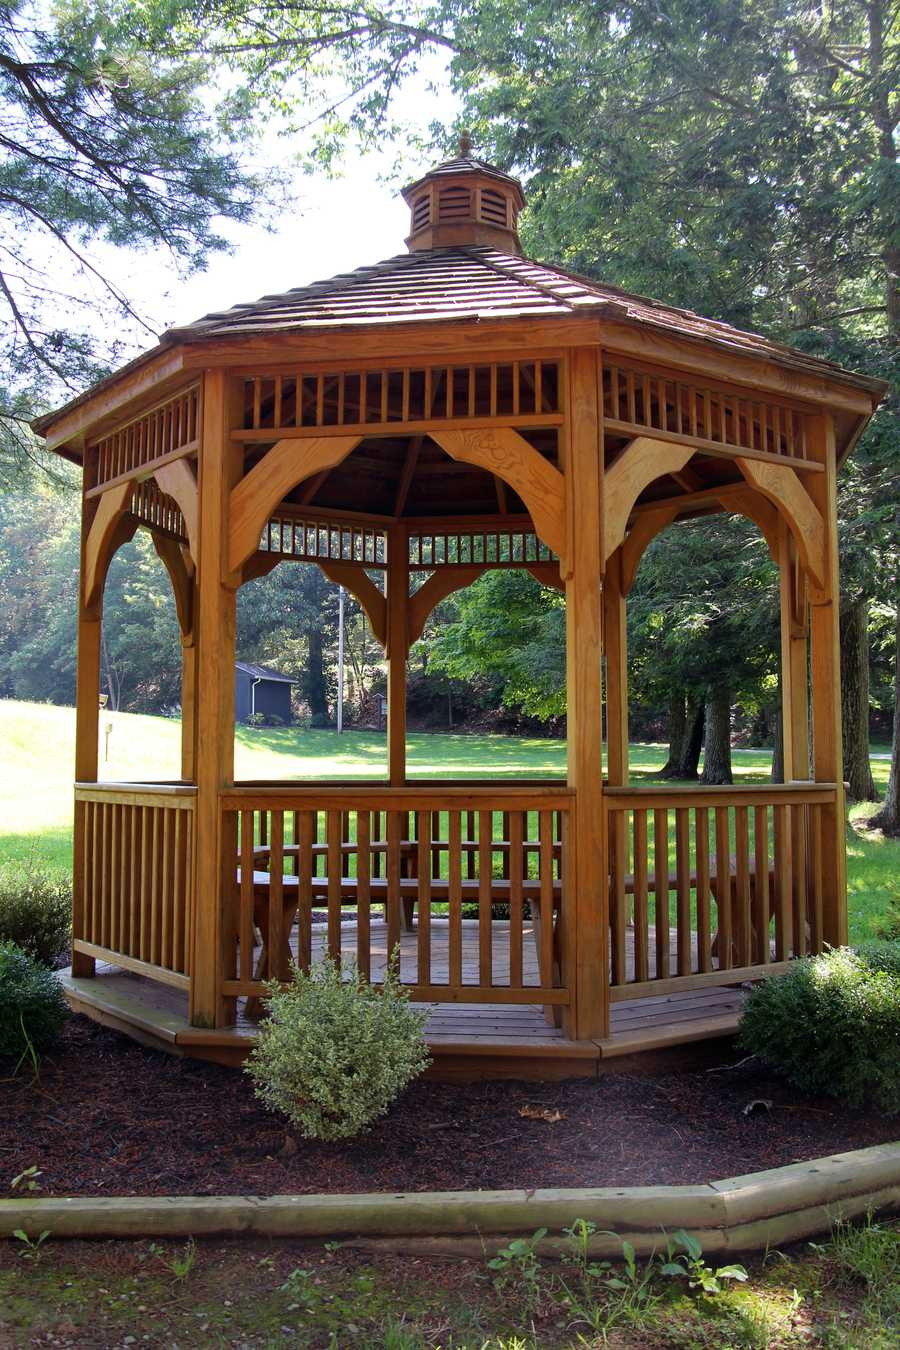 A gazebo is located near the spillway.